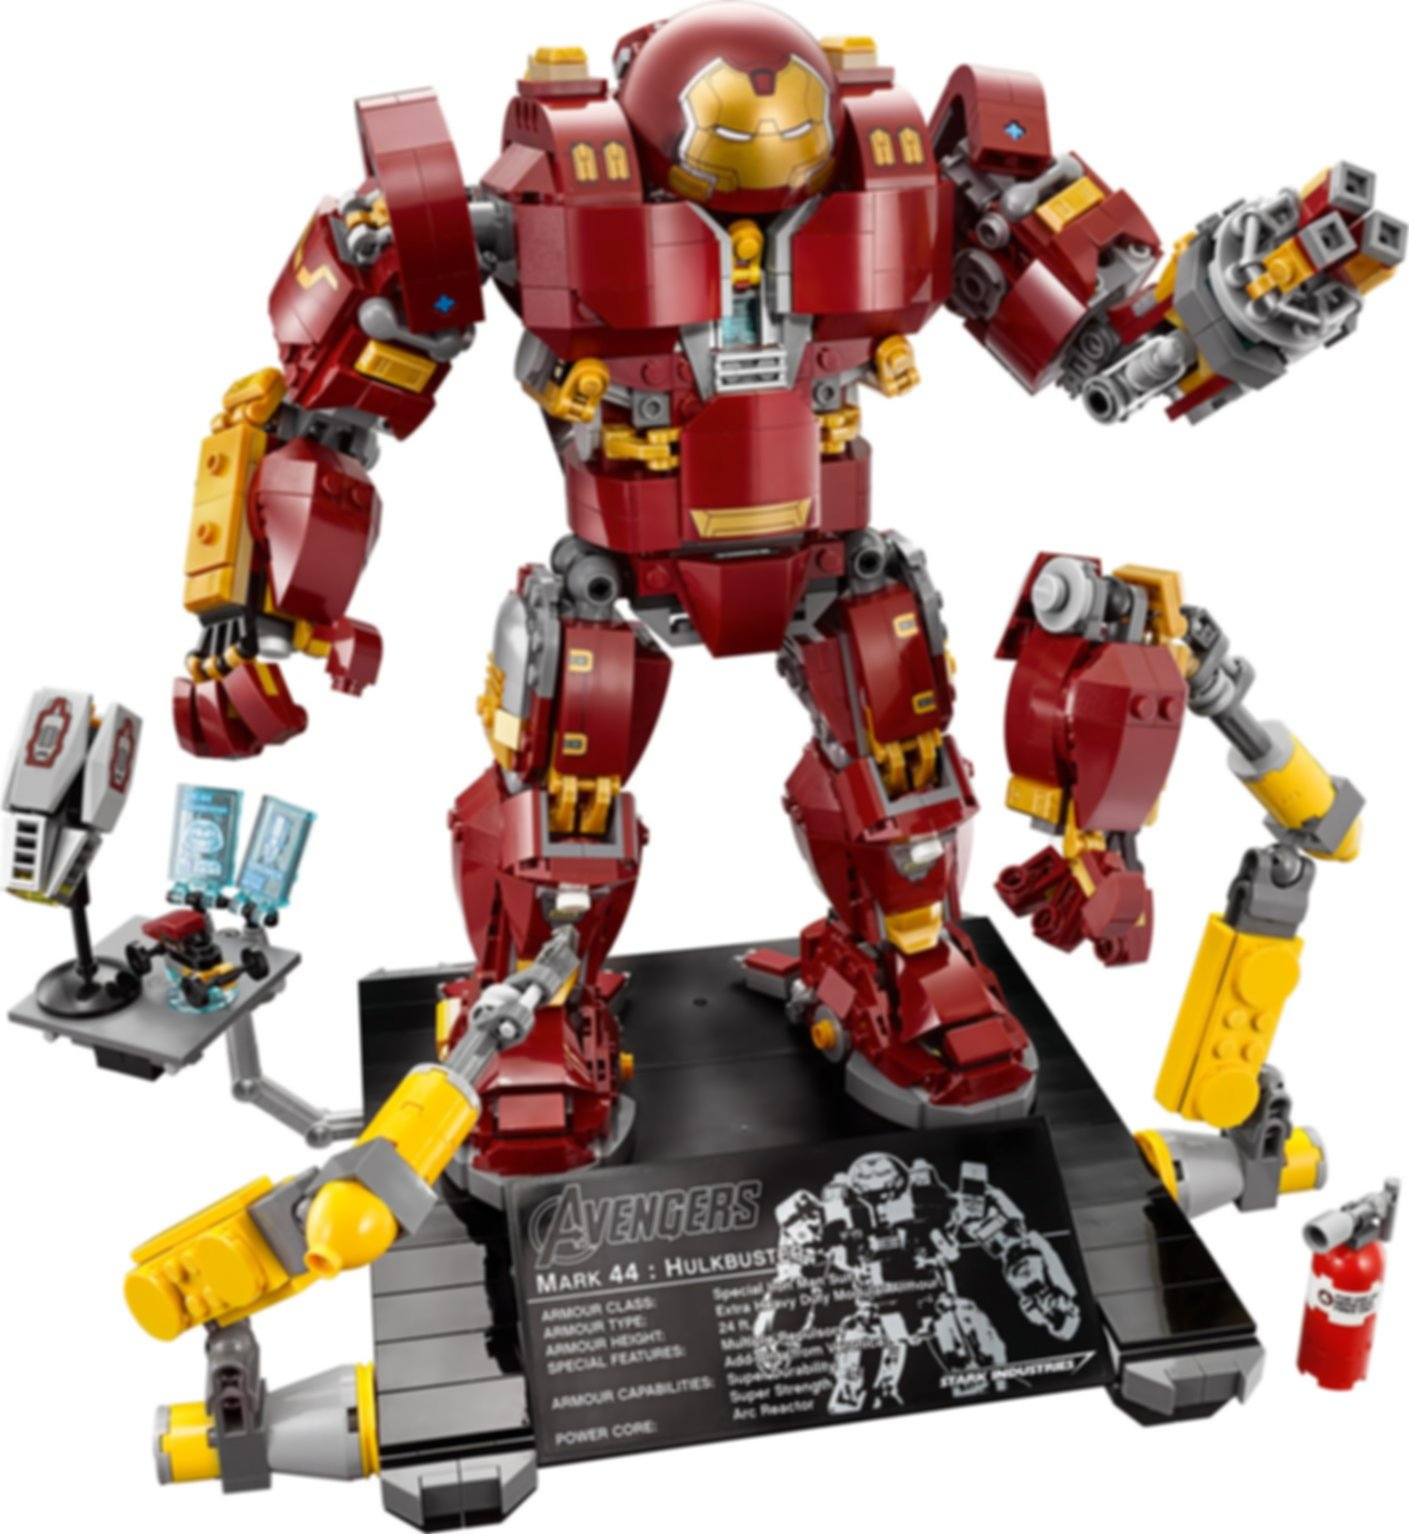 The Hulkbuster: Ultron Edition components